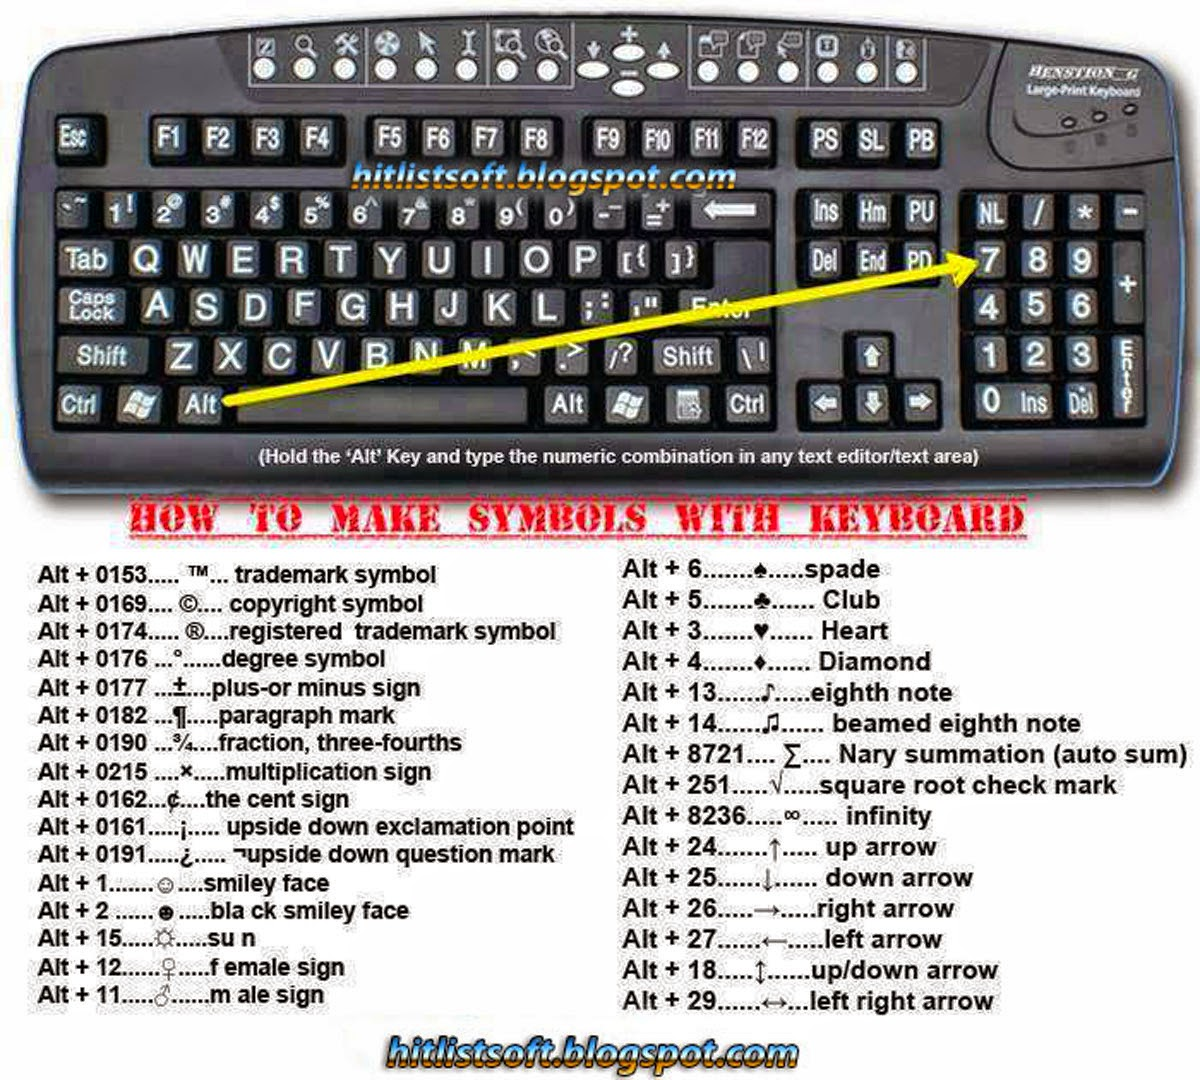 1000 Images About Keyboards On Pinterest: Keyboard Symbols Alt Codes Gallery